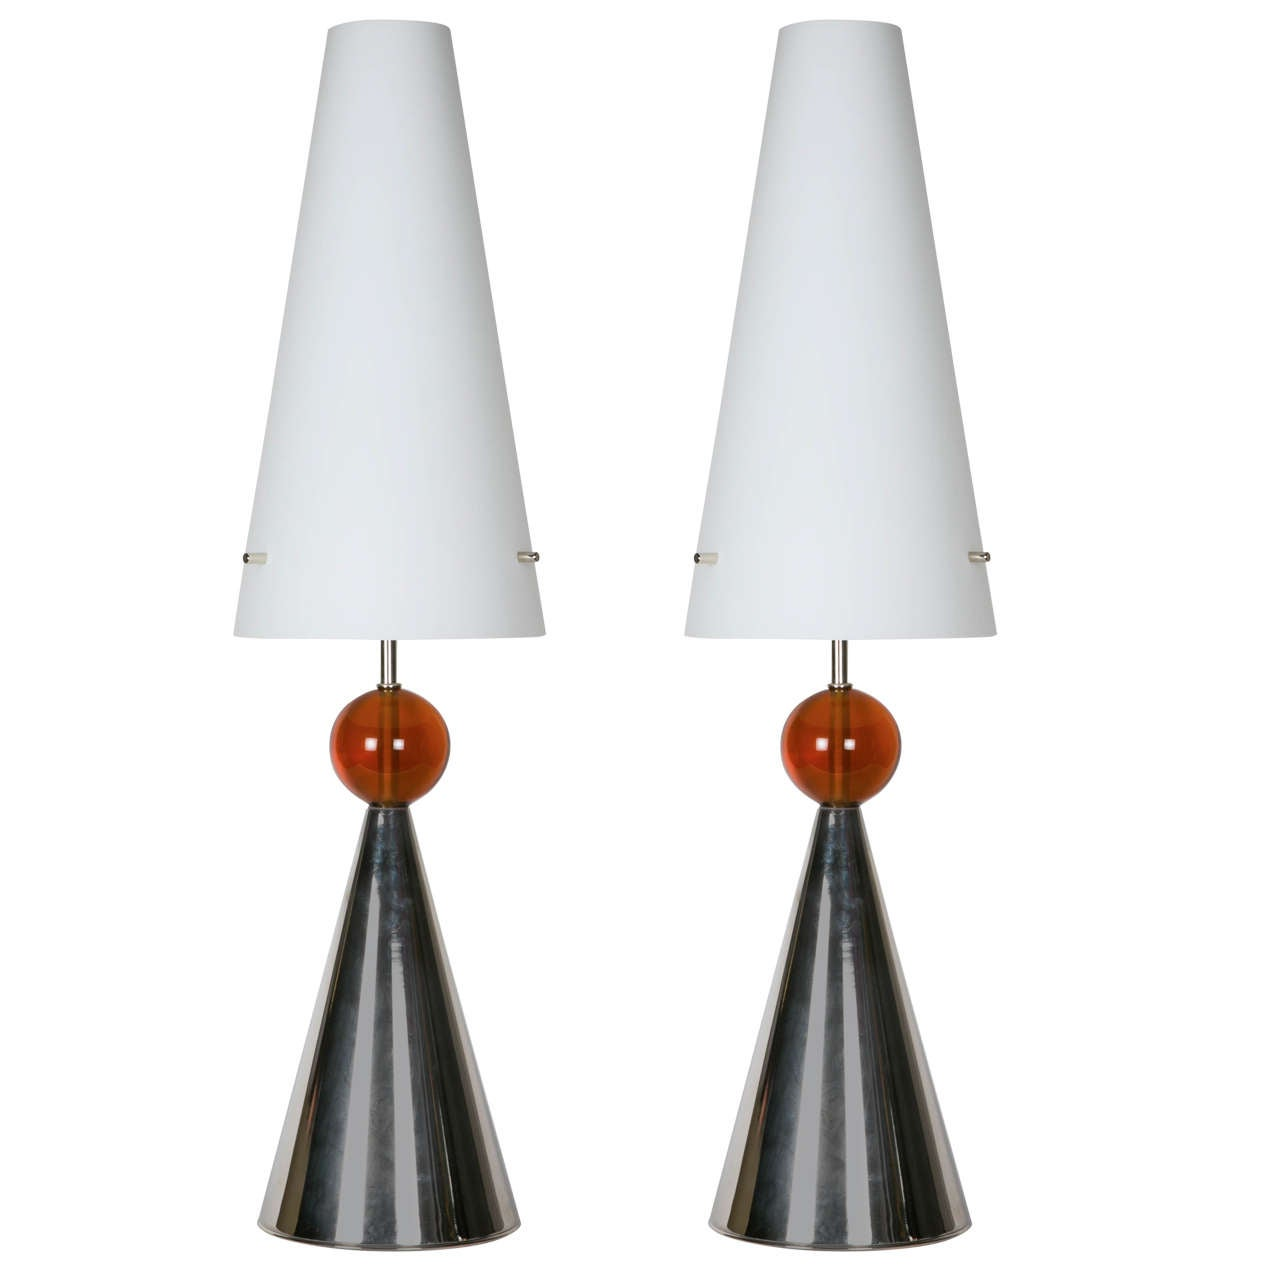 Pair of Lamps with Opaline Shade